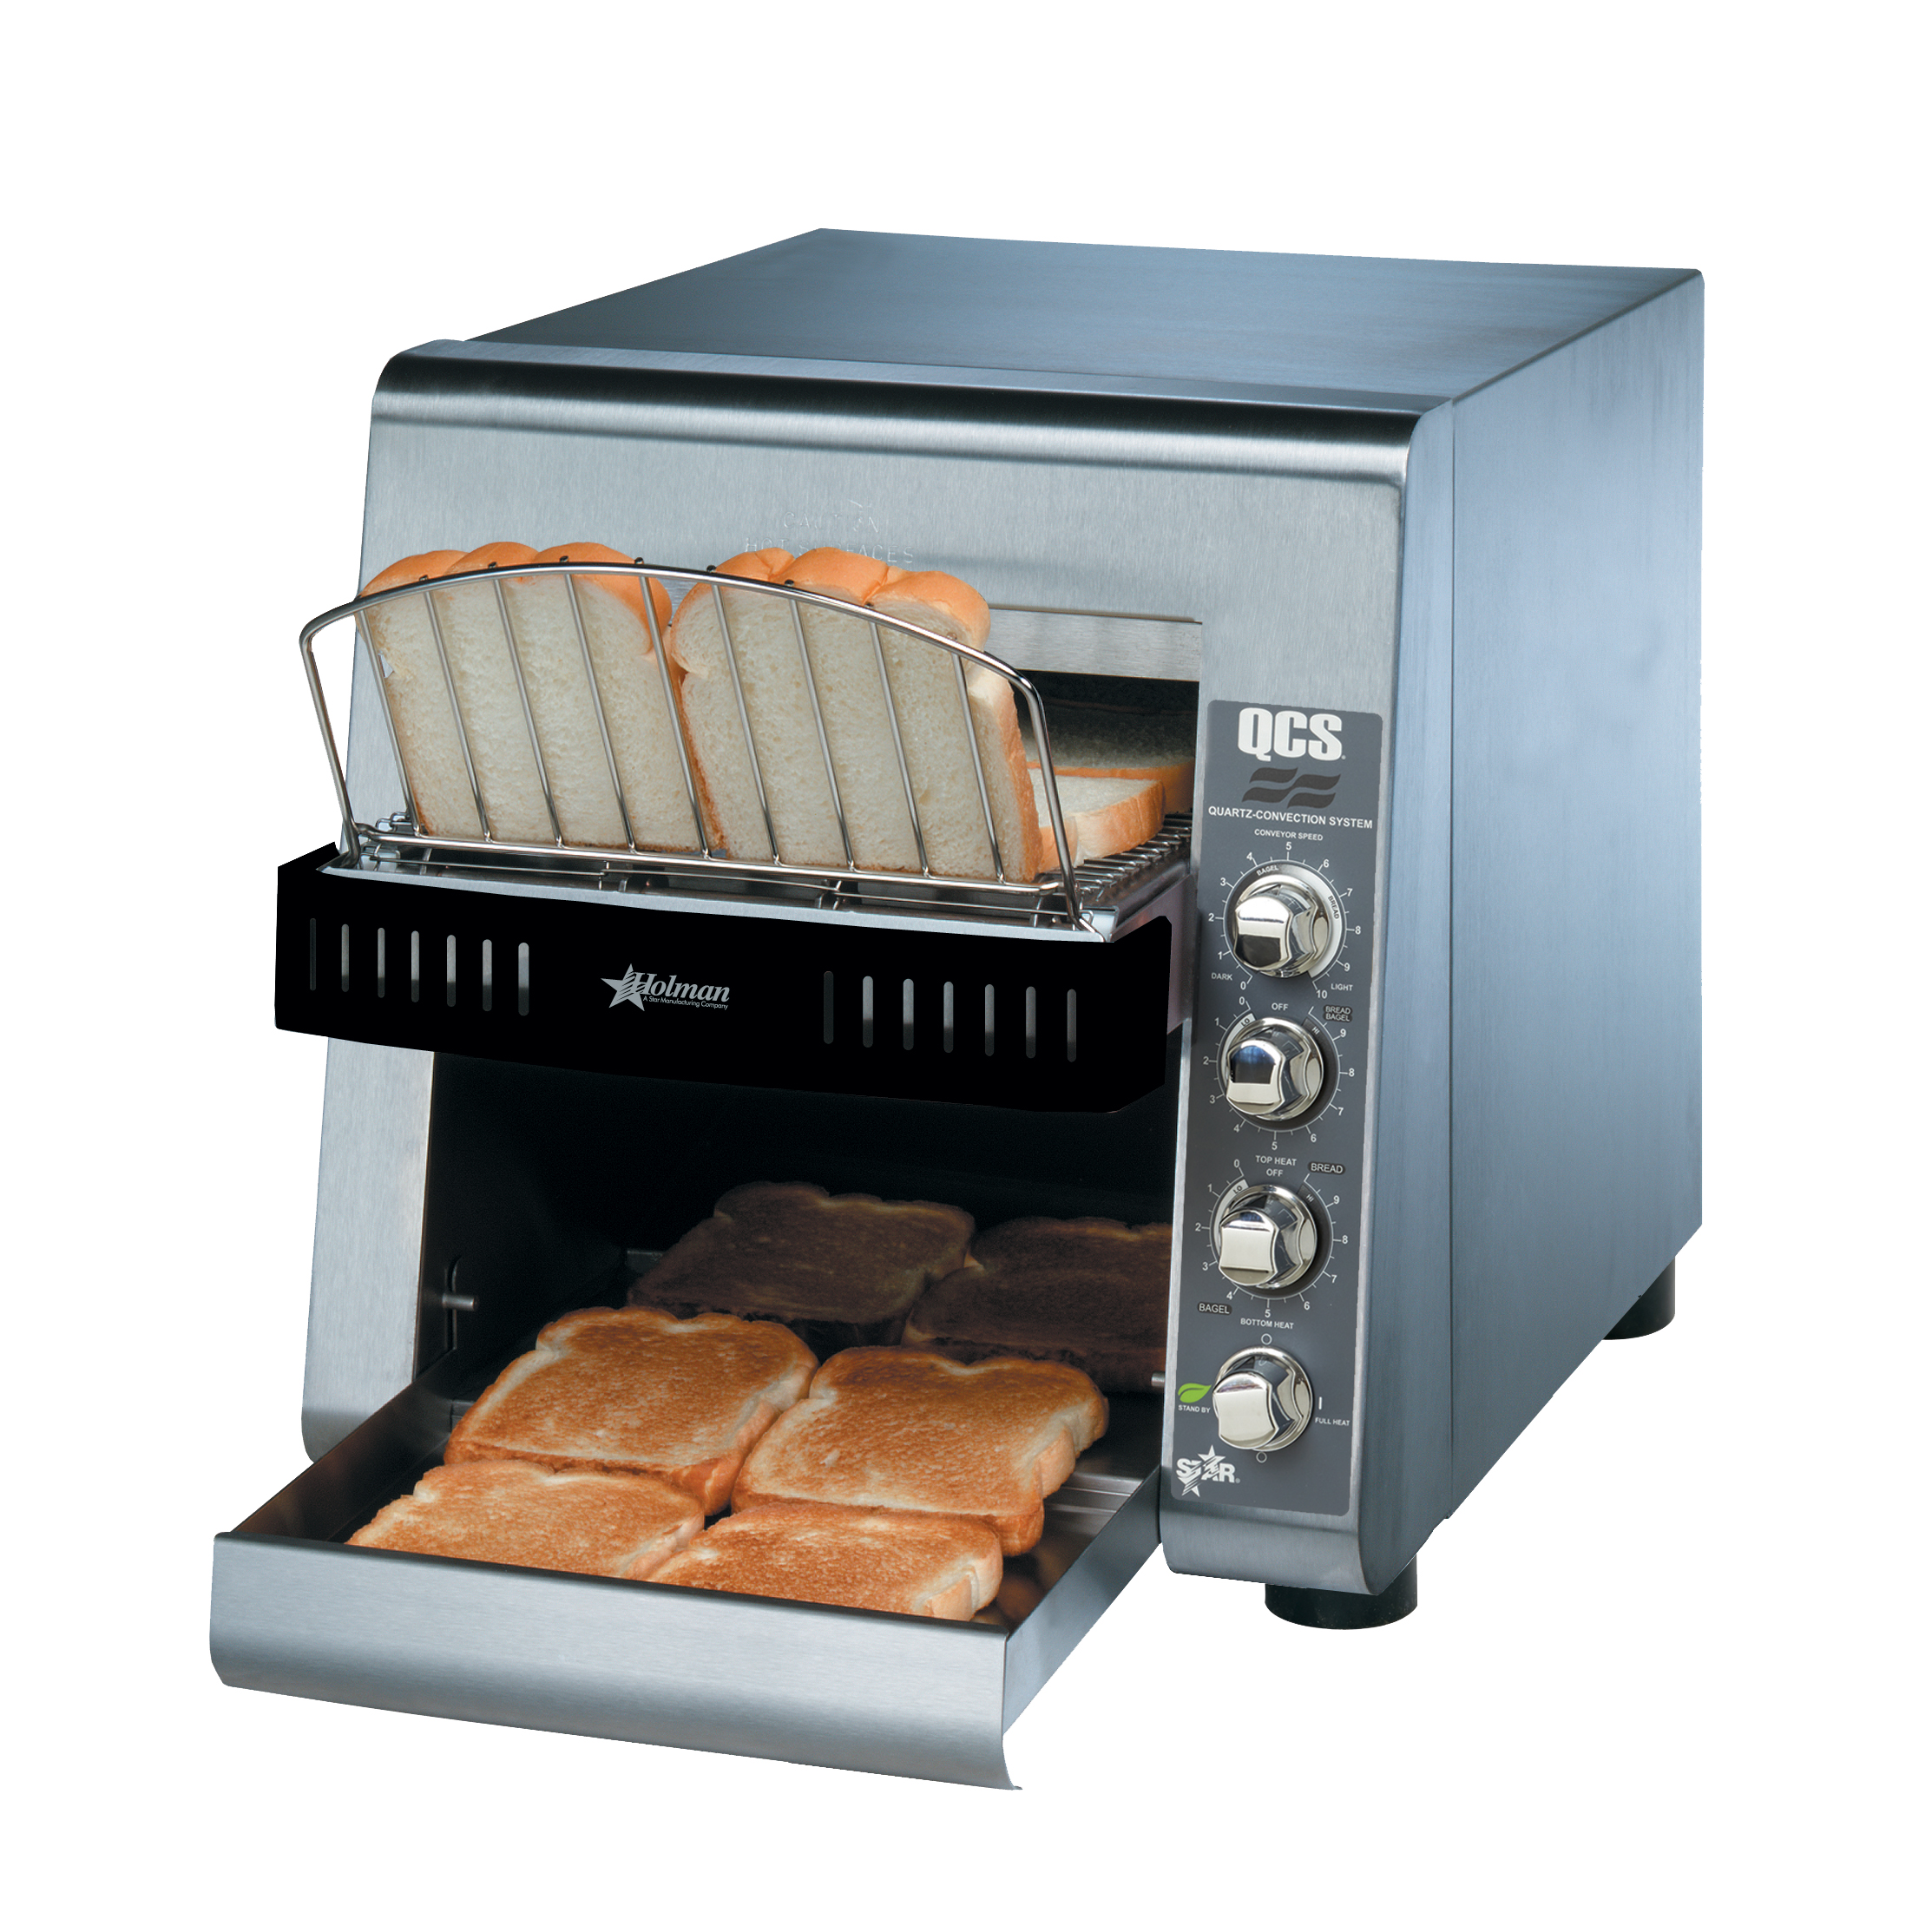 Star QCS2-500-120C toaster, conveyor type